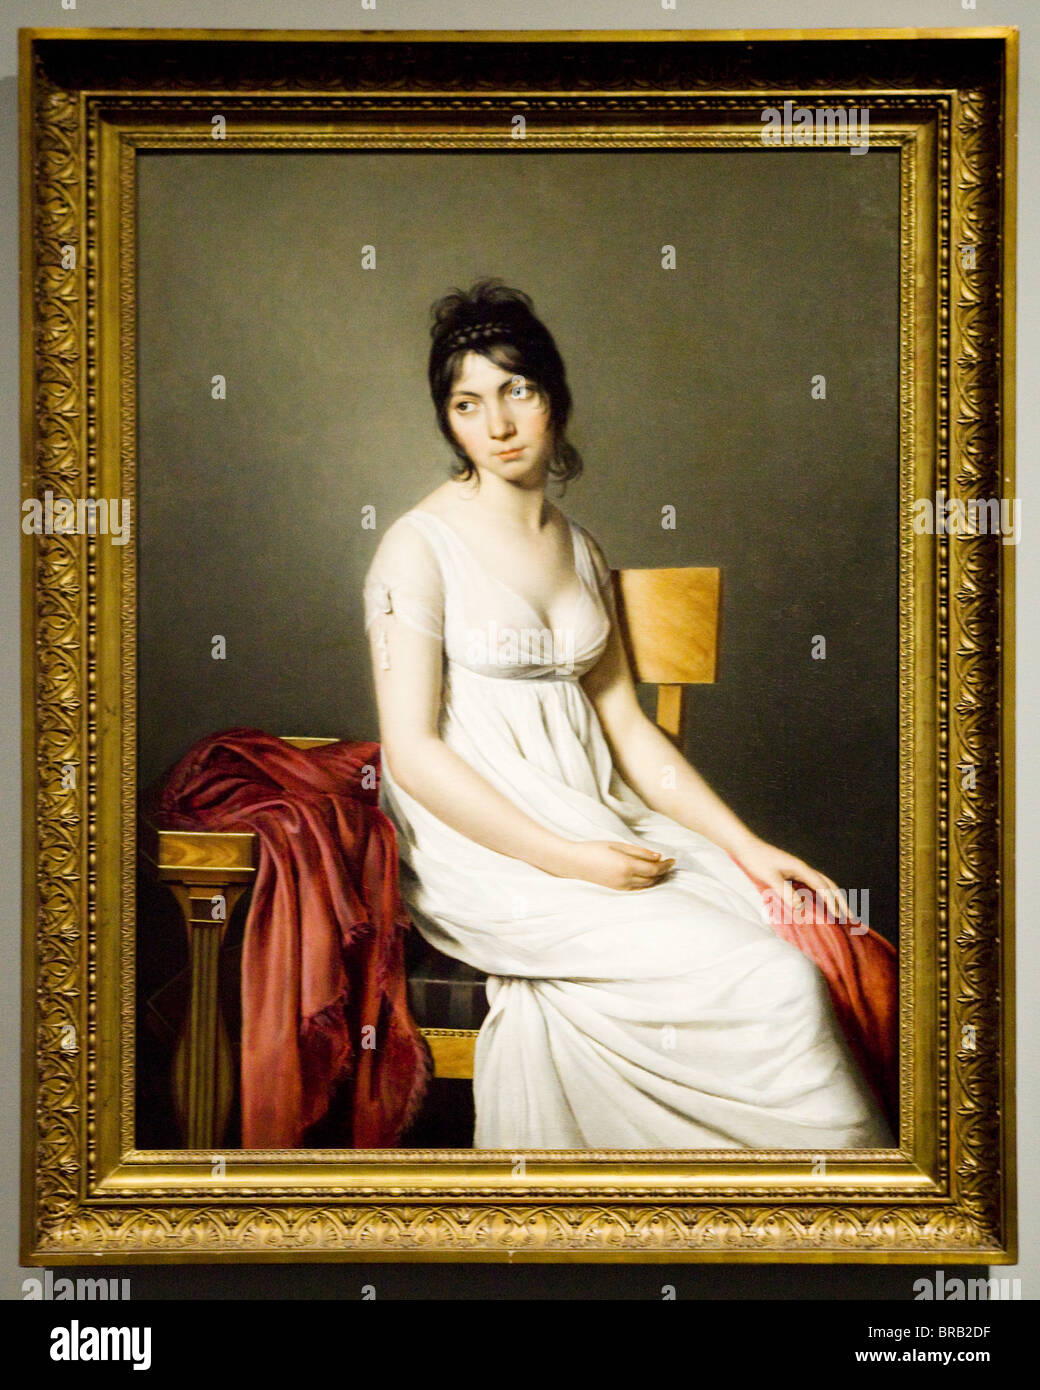 'Portrait of a Young Woman in White' by Jacques-Louis David, 1798 - Stock Image